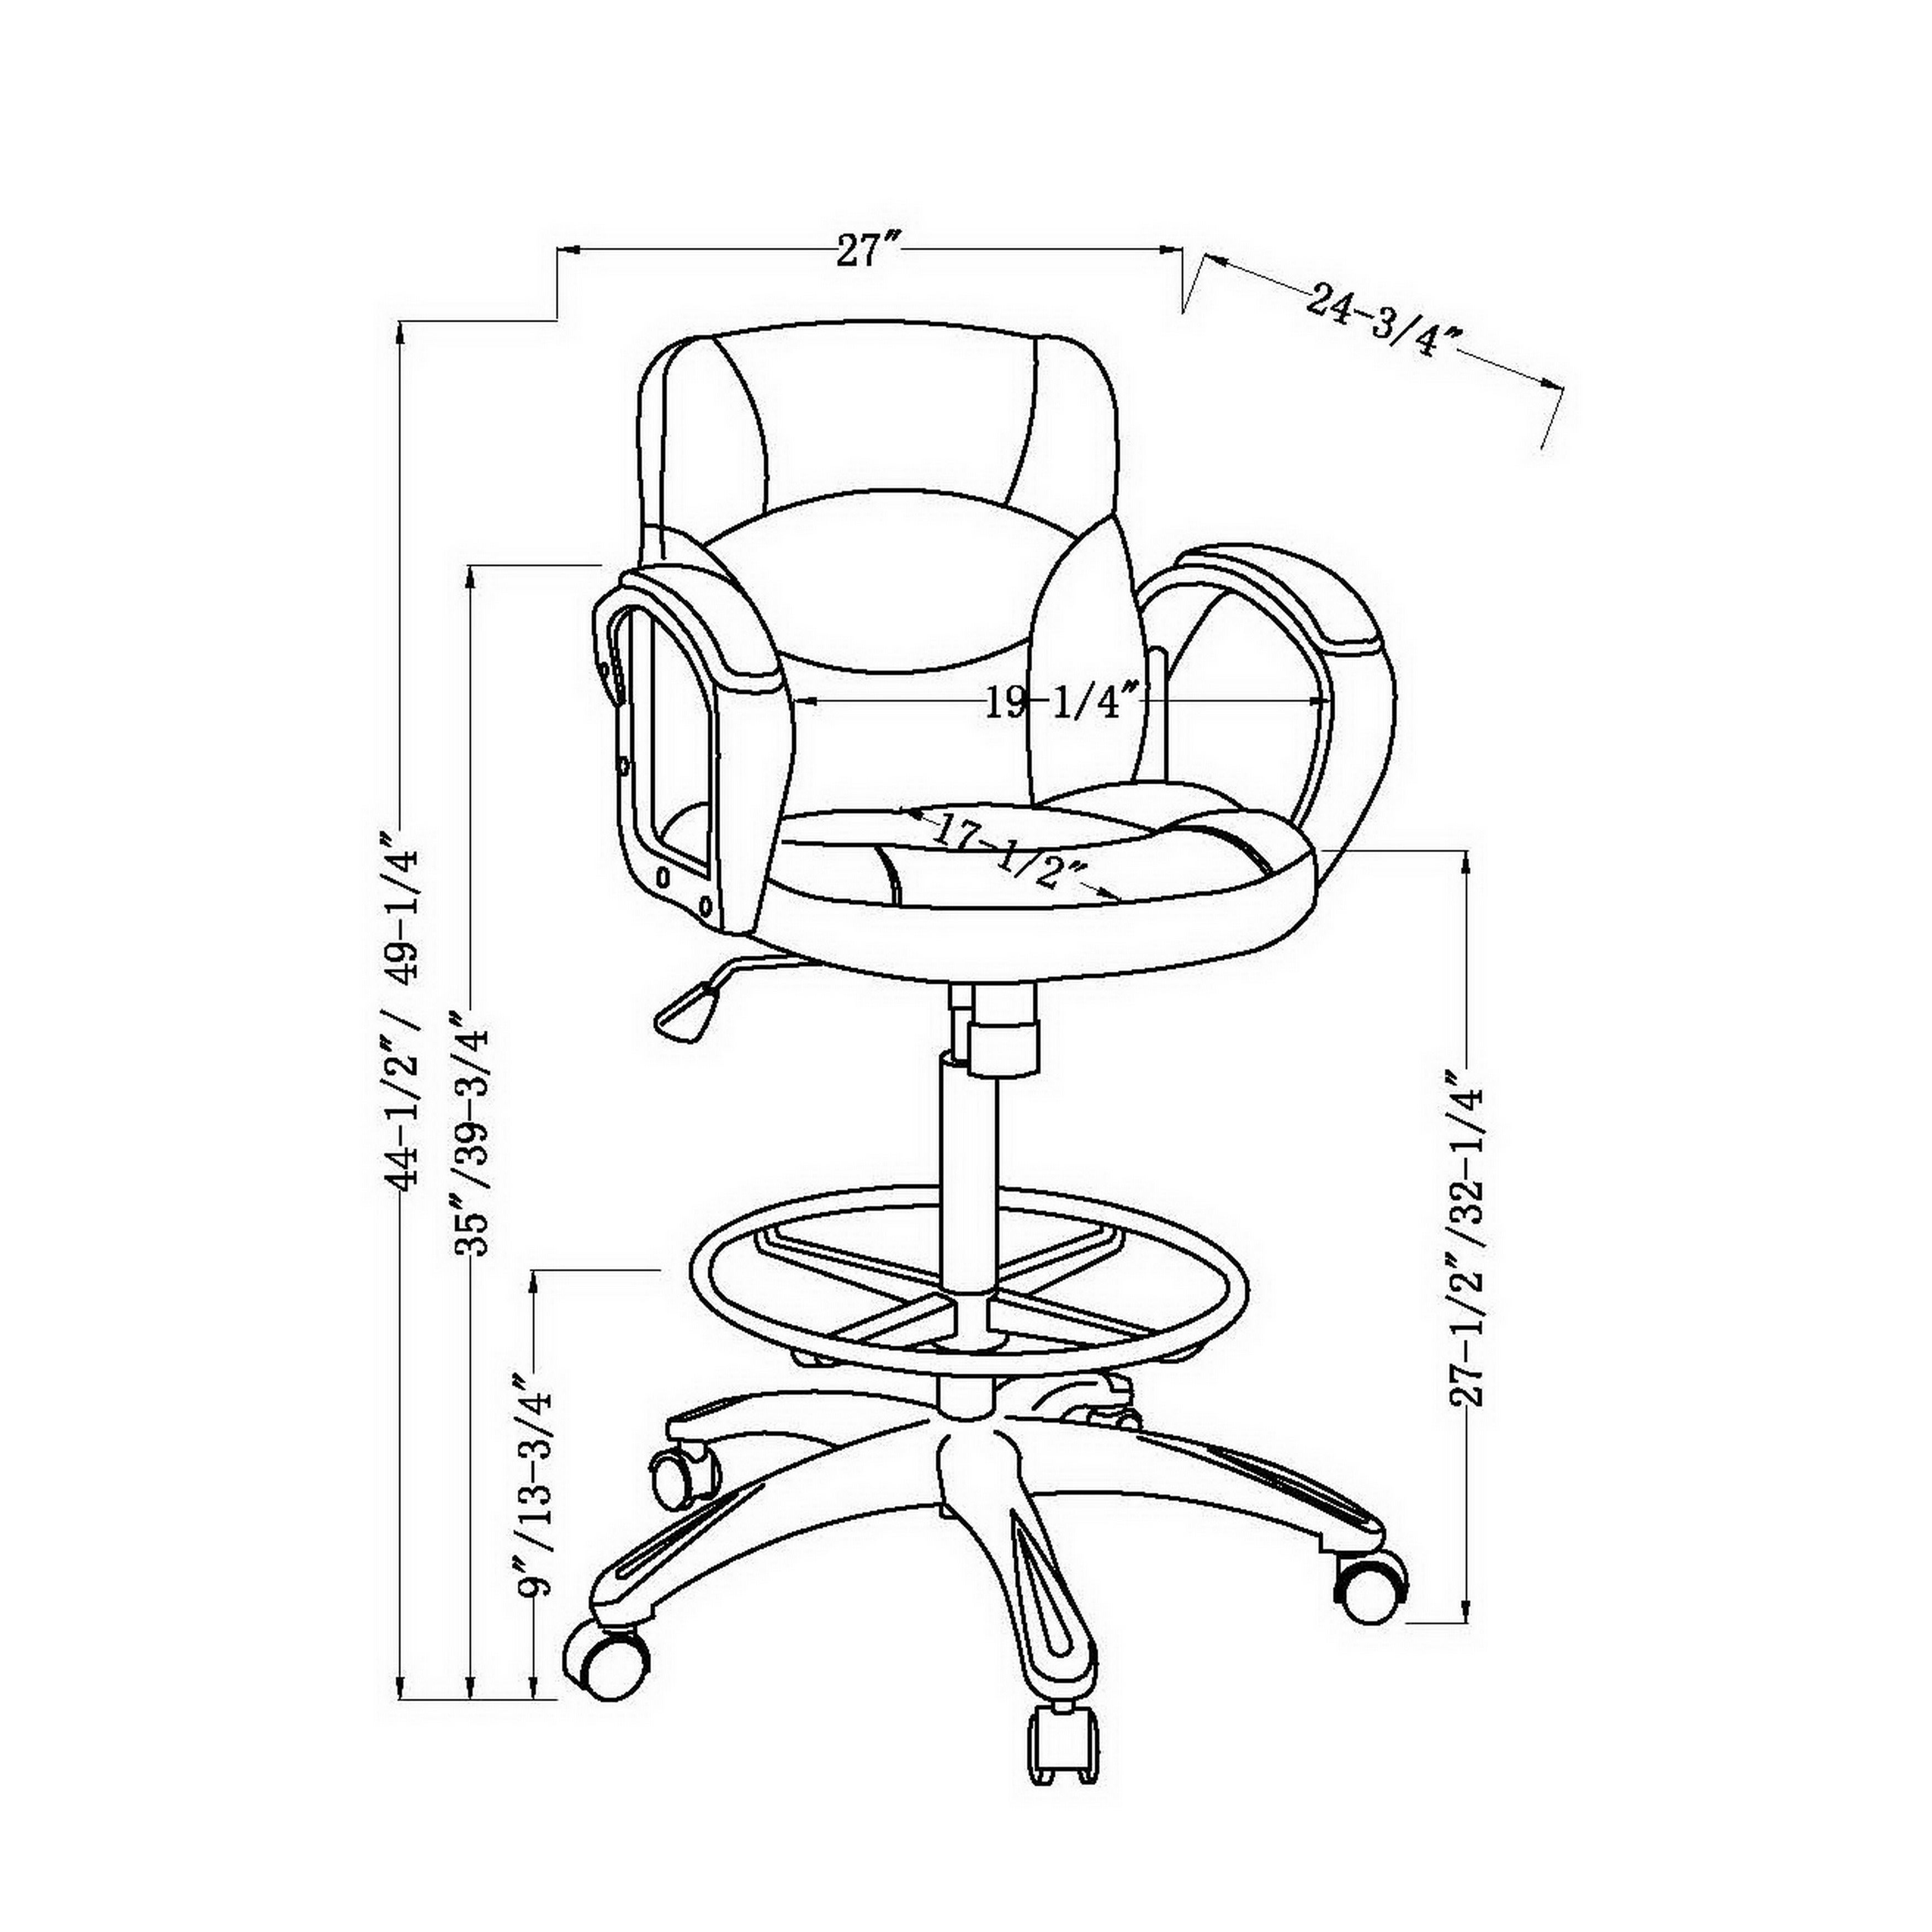 Office Chair Top View Drawing. Desk Chair Man Back Pain Workplace ... for office chair top view drawing  174mzq